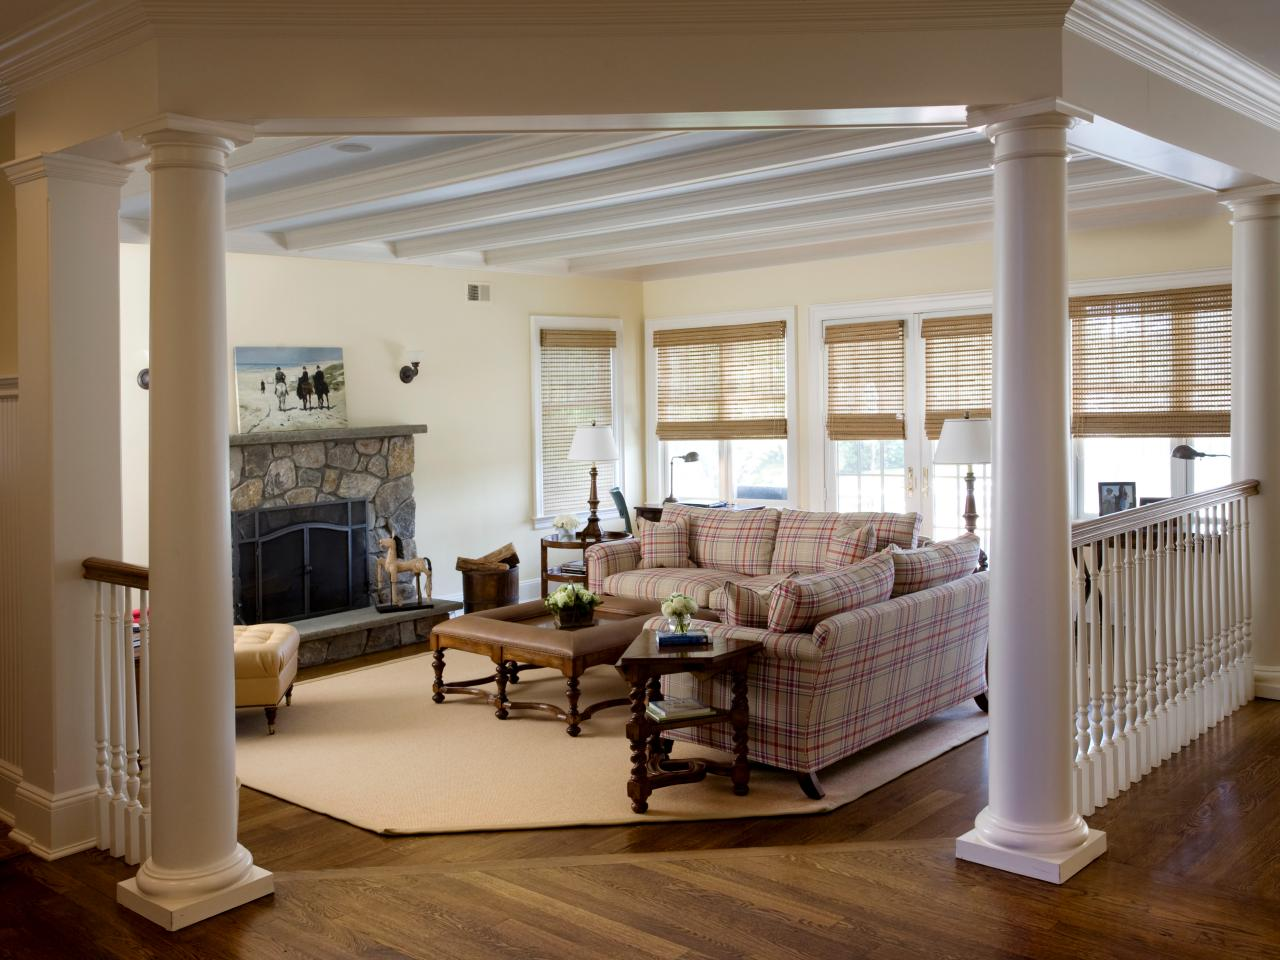 traditional living room with columns this step down living room offers